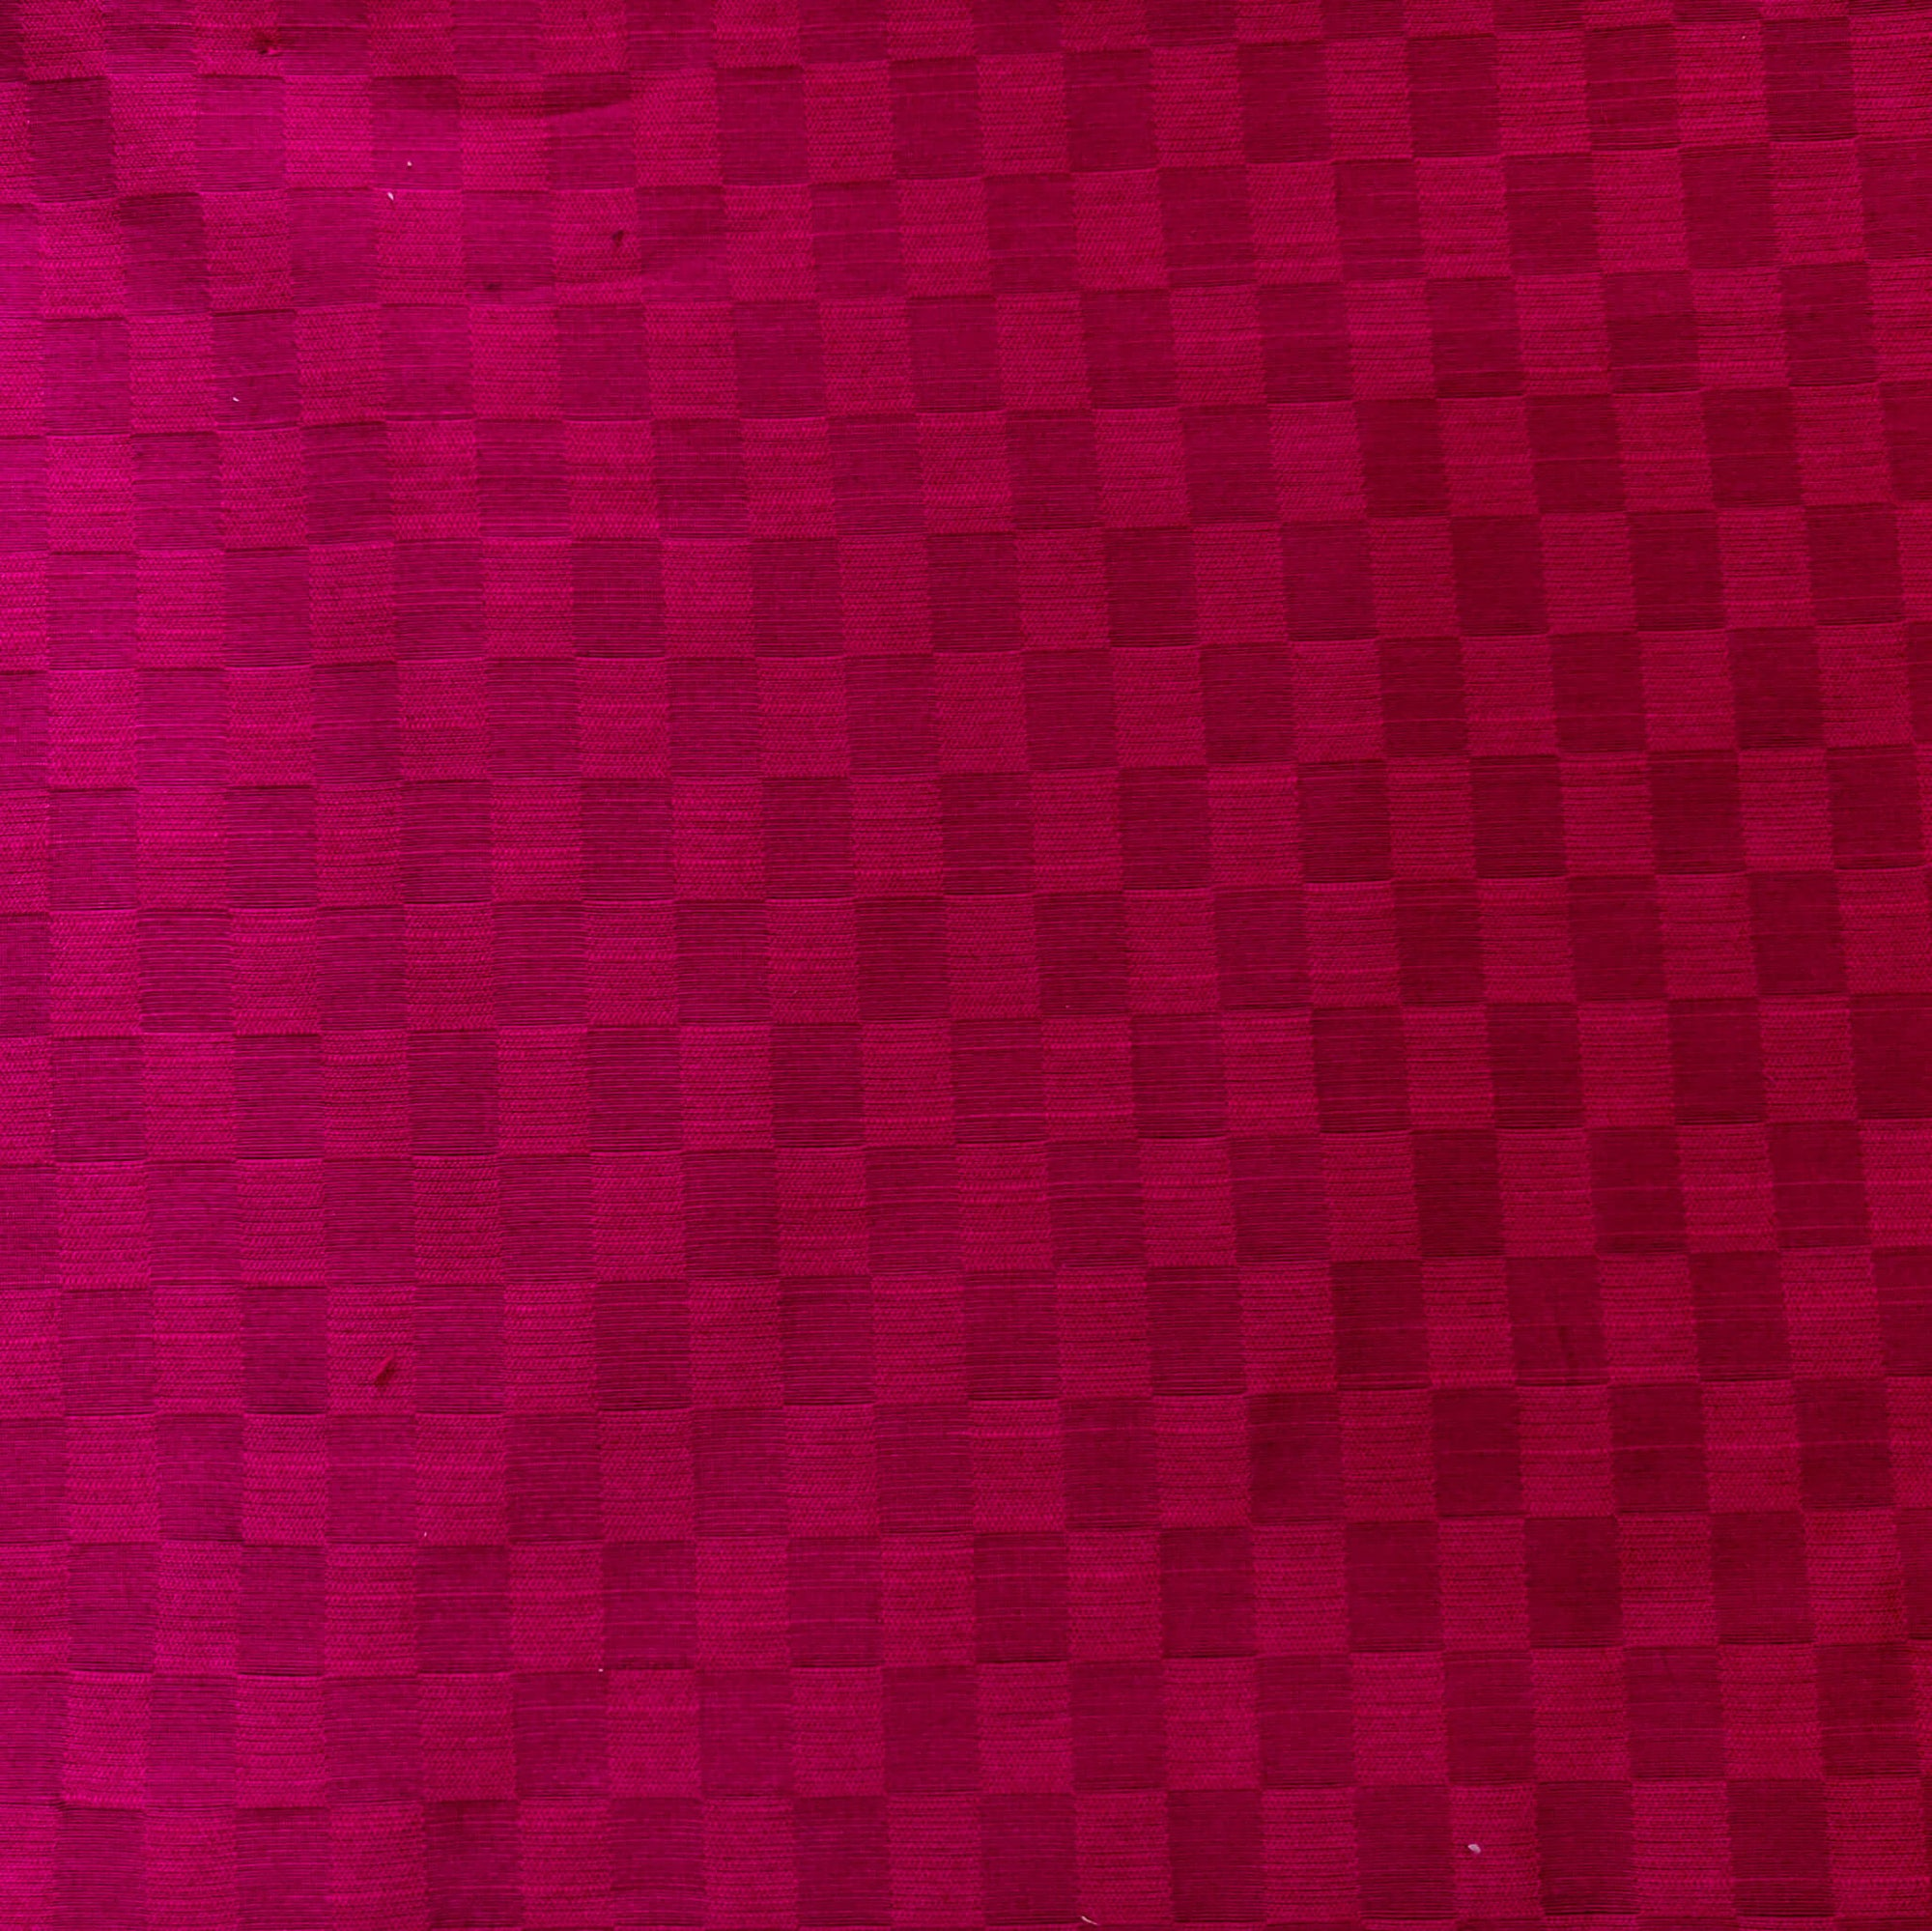 Cotton Silk Rani Pink With Interlocked Checks Fabric